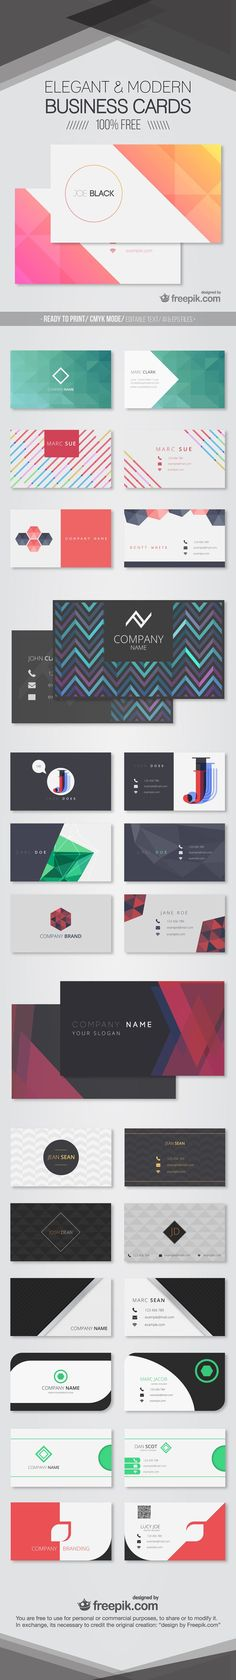 Freebie: 30 Elegant & Modern Business Card Templates (AI & EPS)